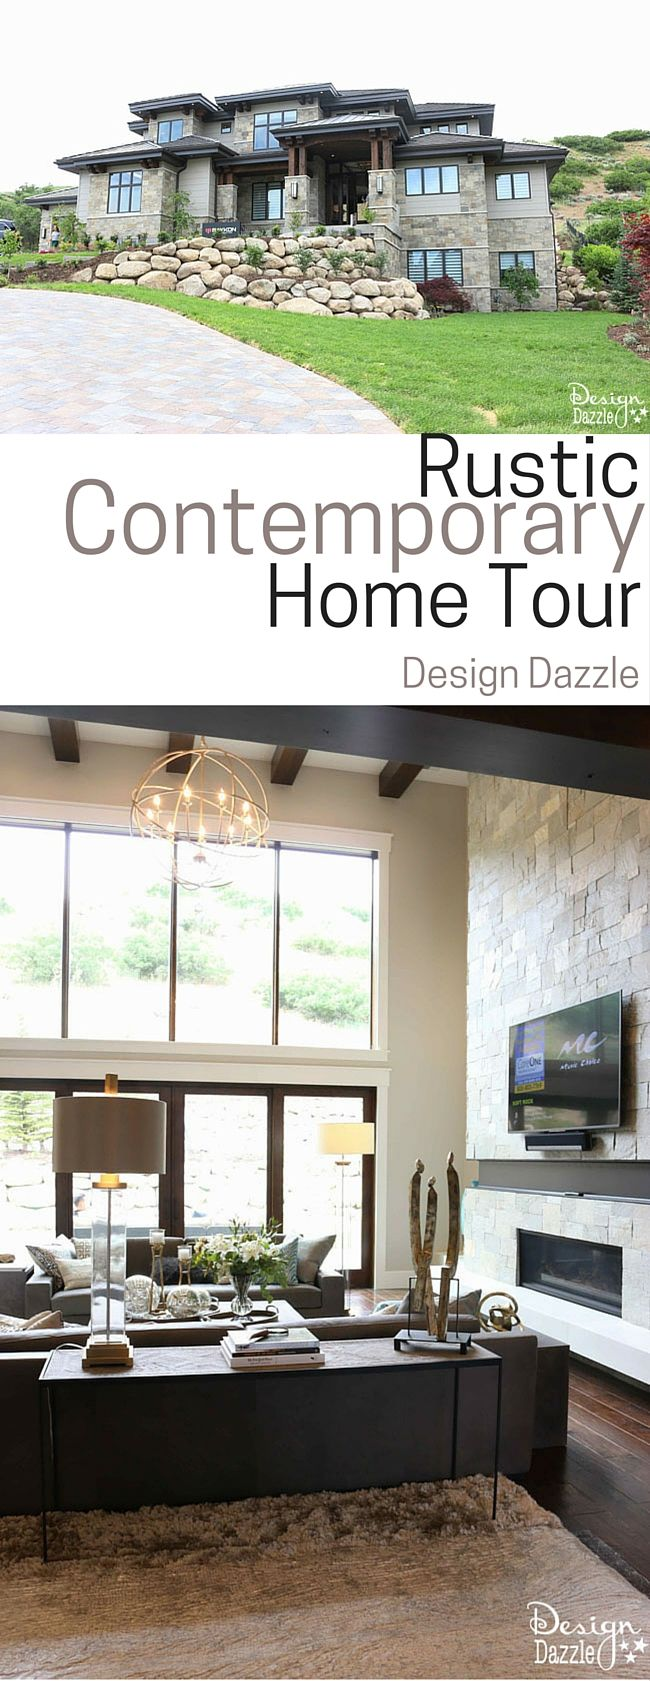 Amazing Rustic Contemporary Home Tour! | Design Dazzle